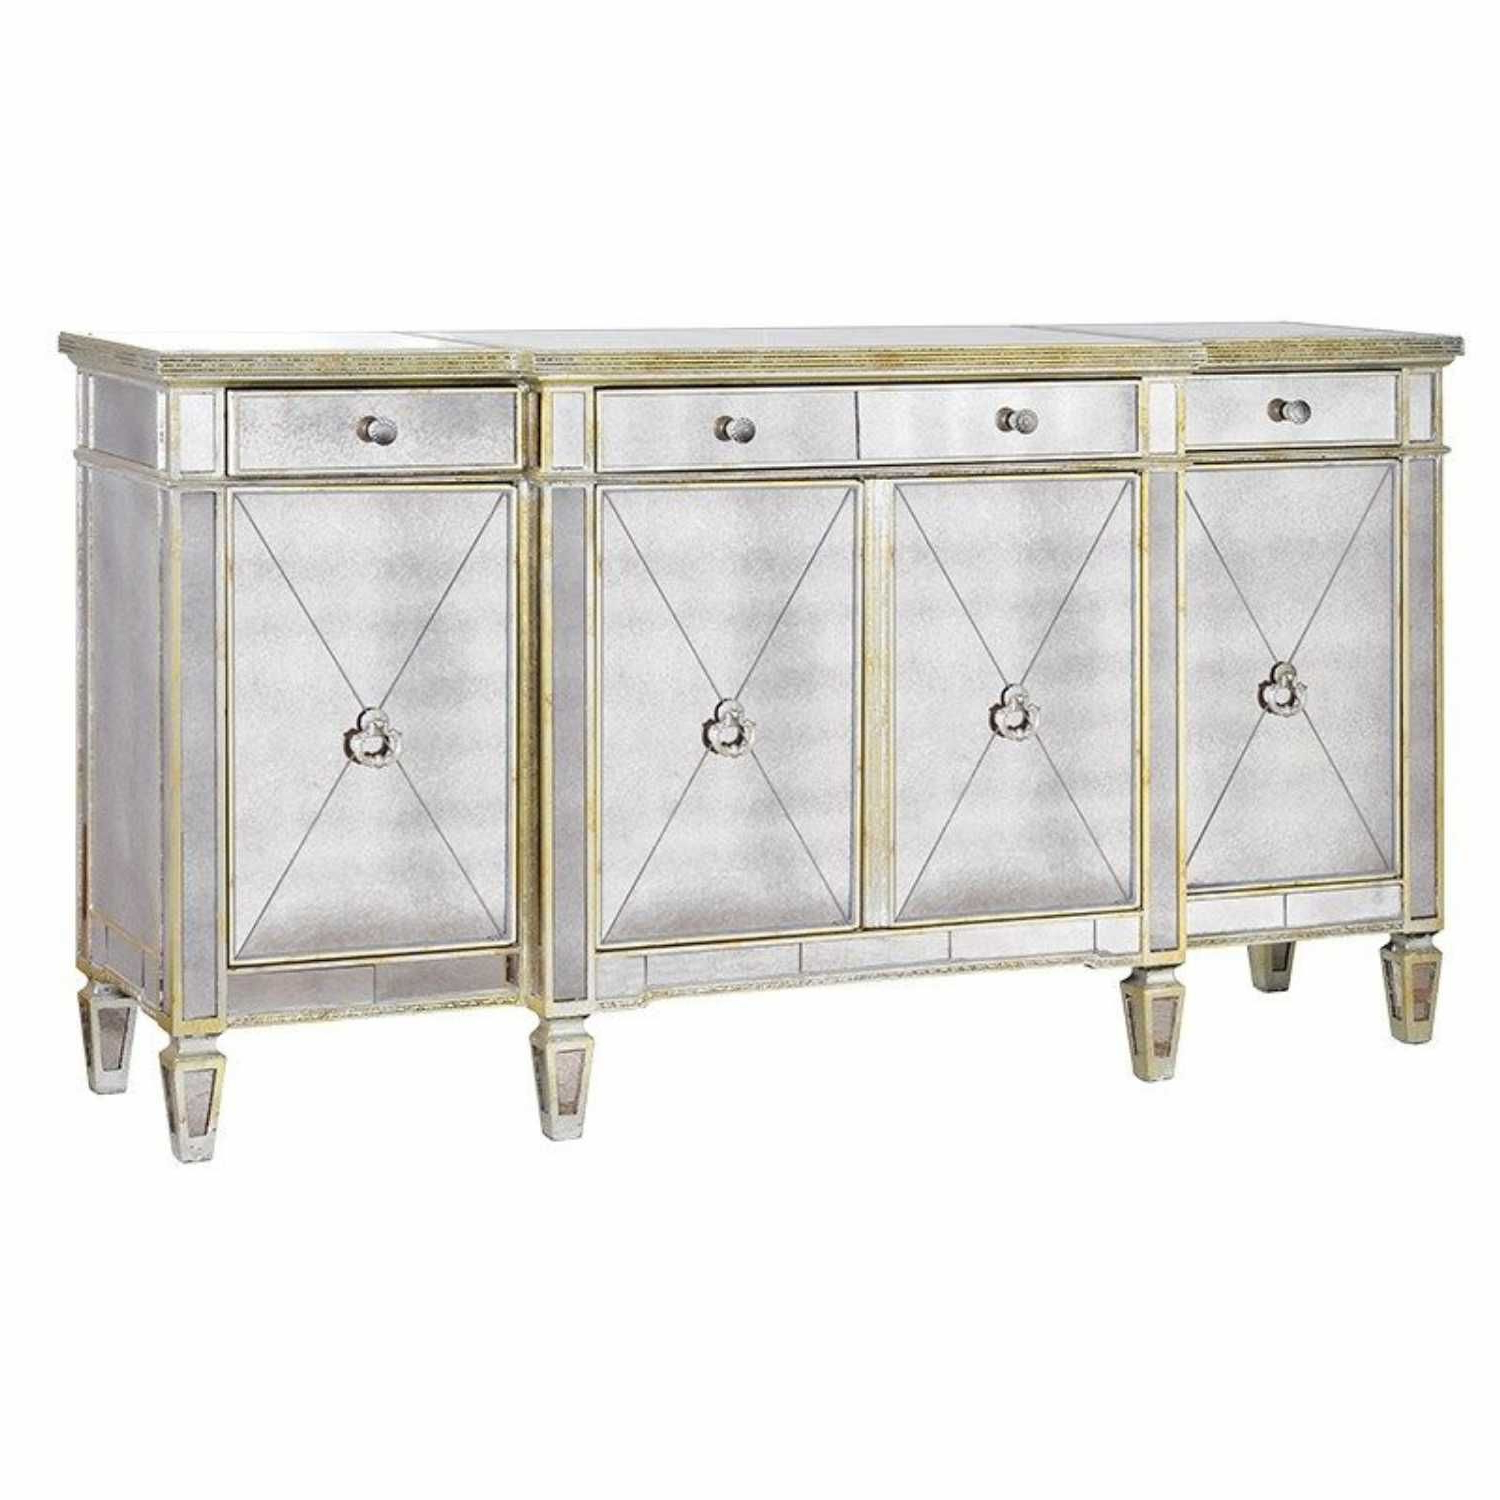 Aged Mirrored 4 Door Sideboards With Best And Newest Large Antique Seville Venetian Mirrored Glass Sideboard 4 Door (Gallery 1 of 20)